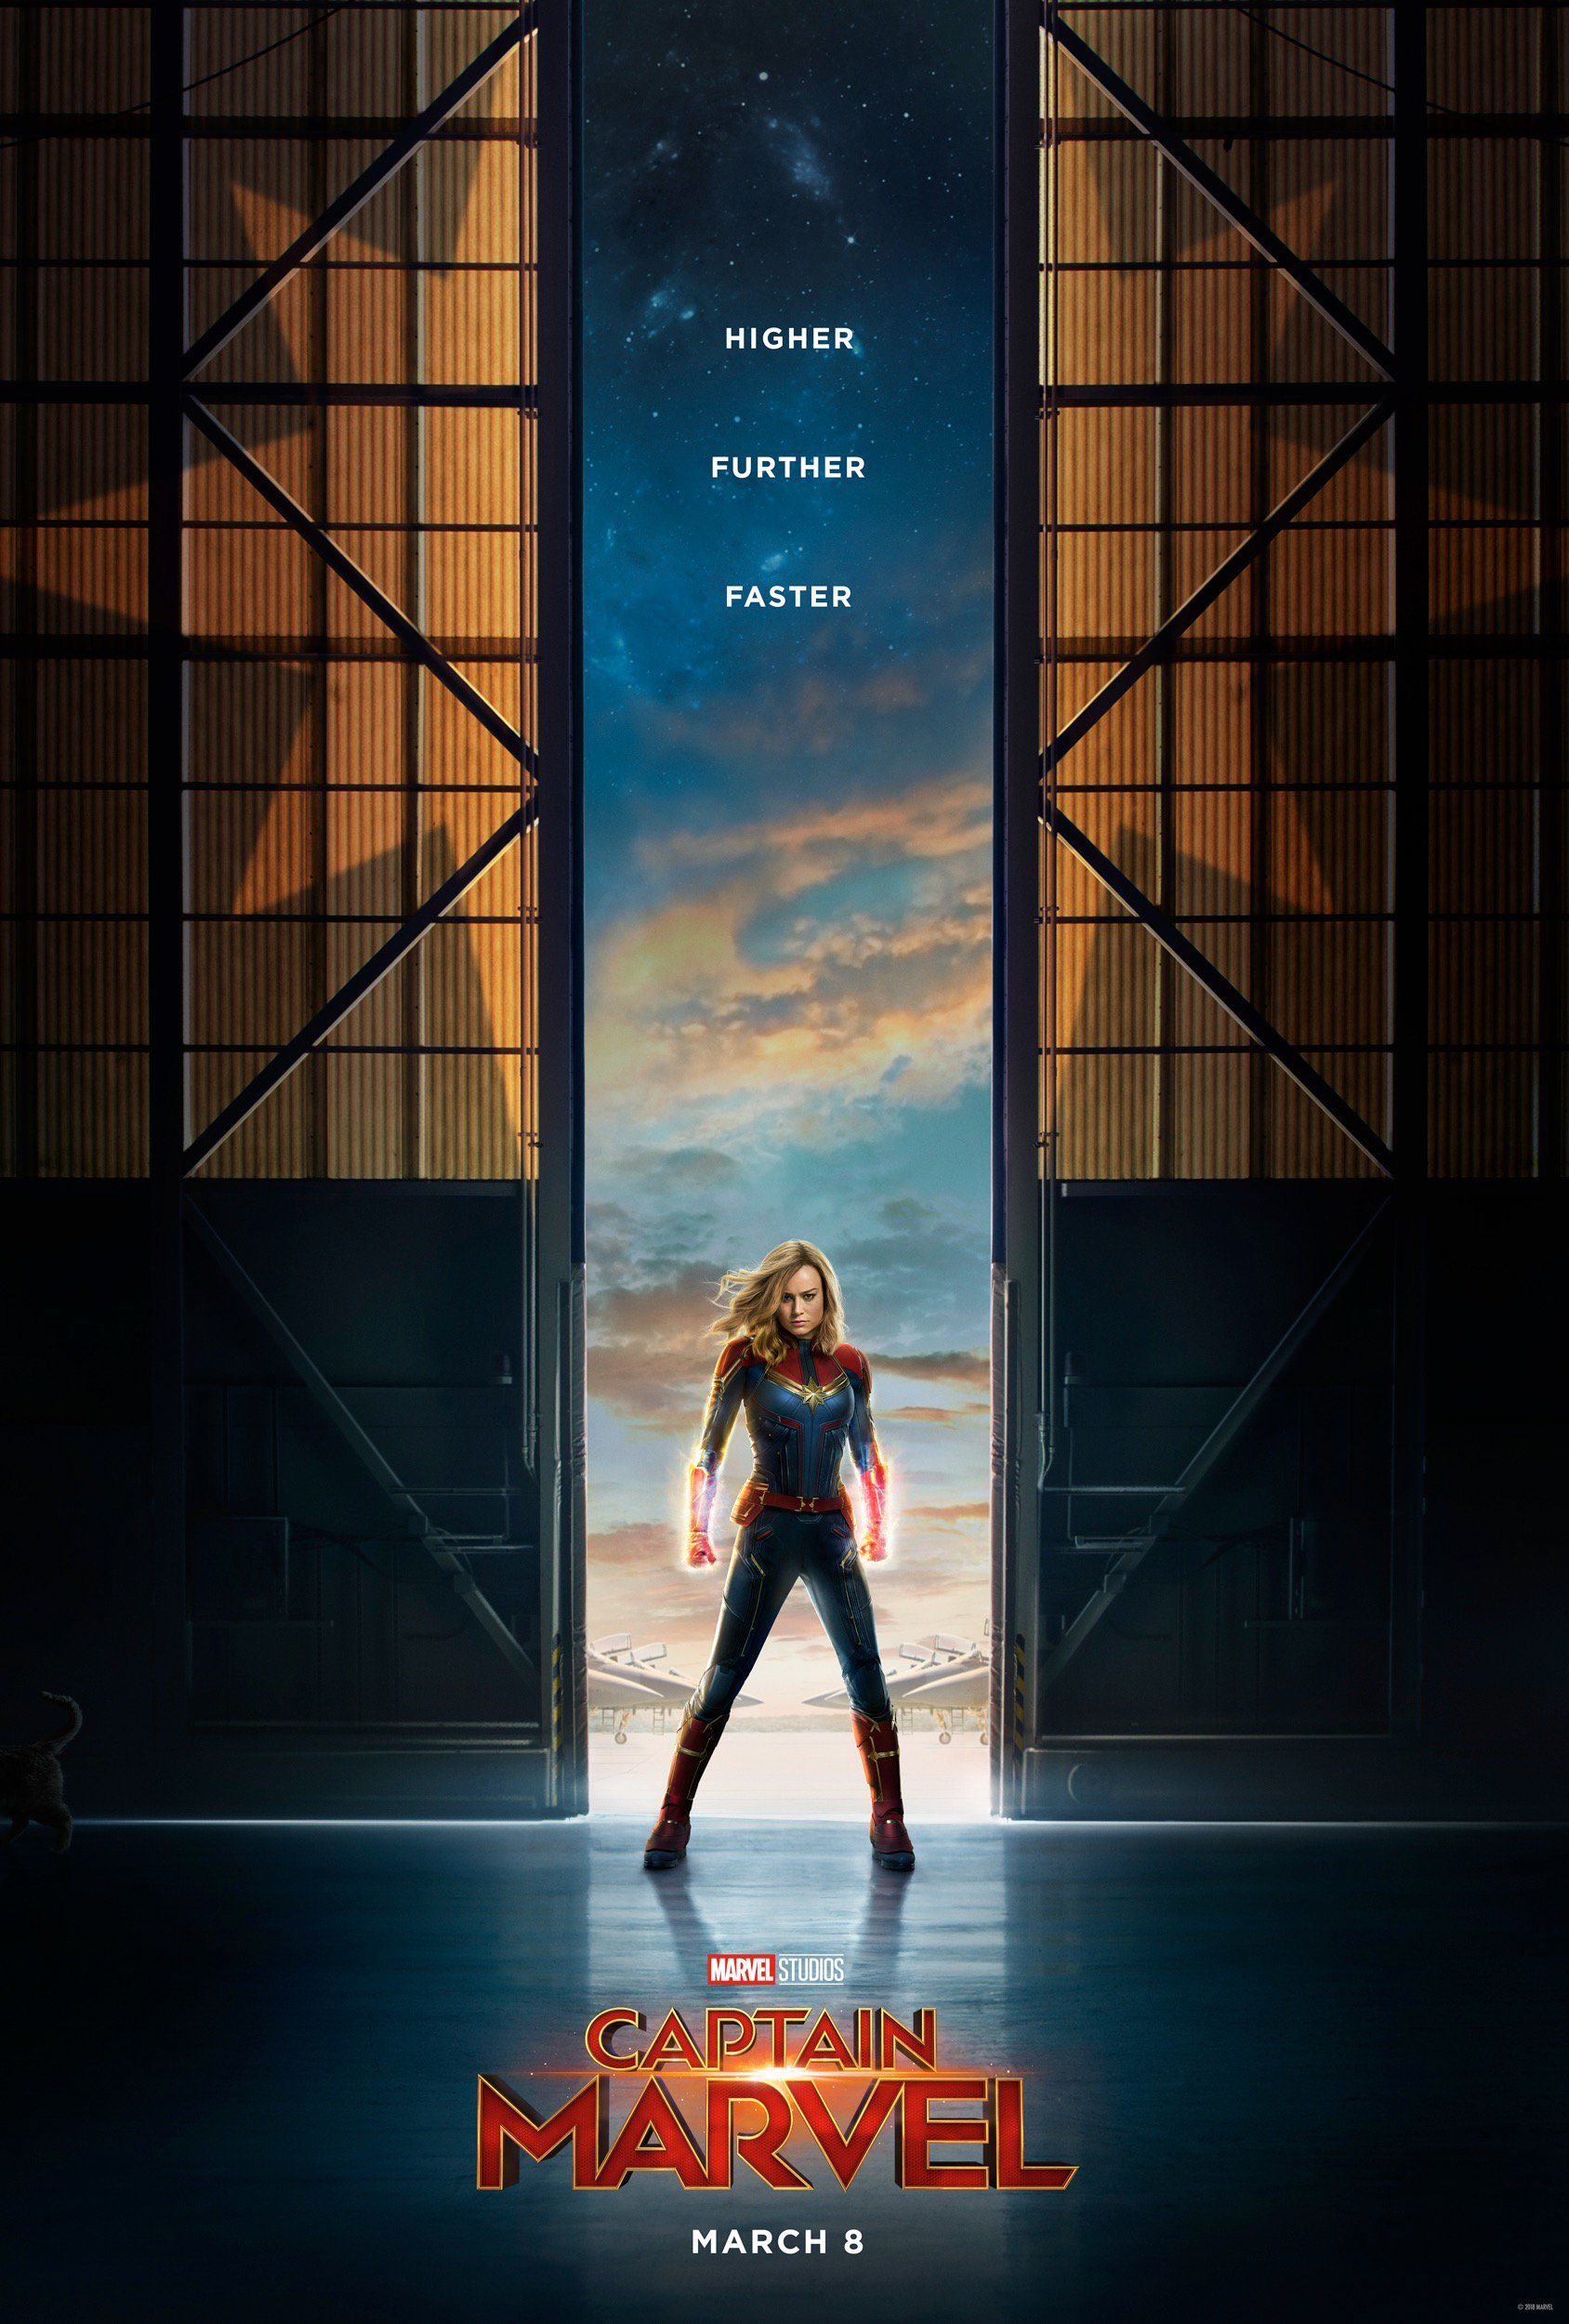 Captain Marvel teaser poster